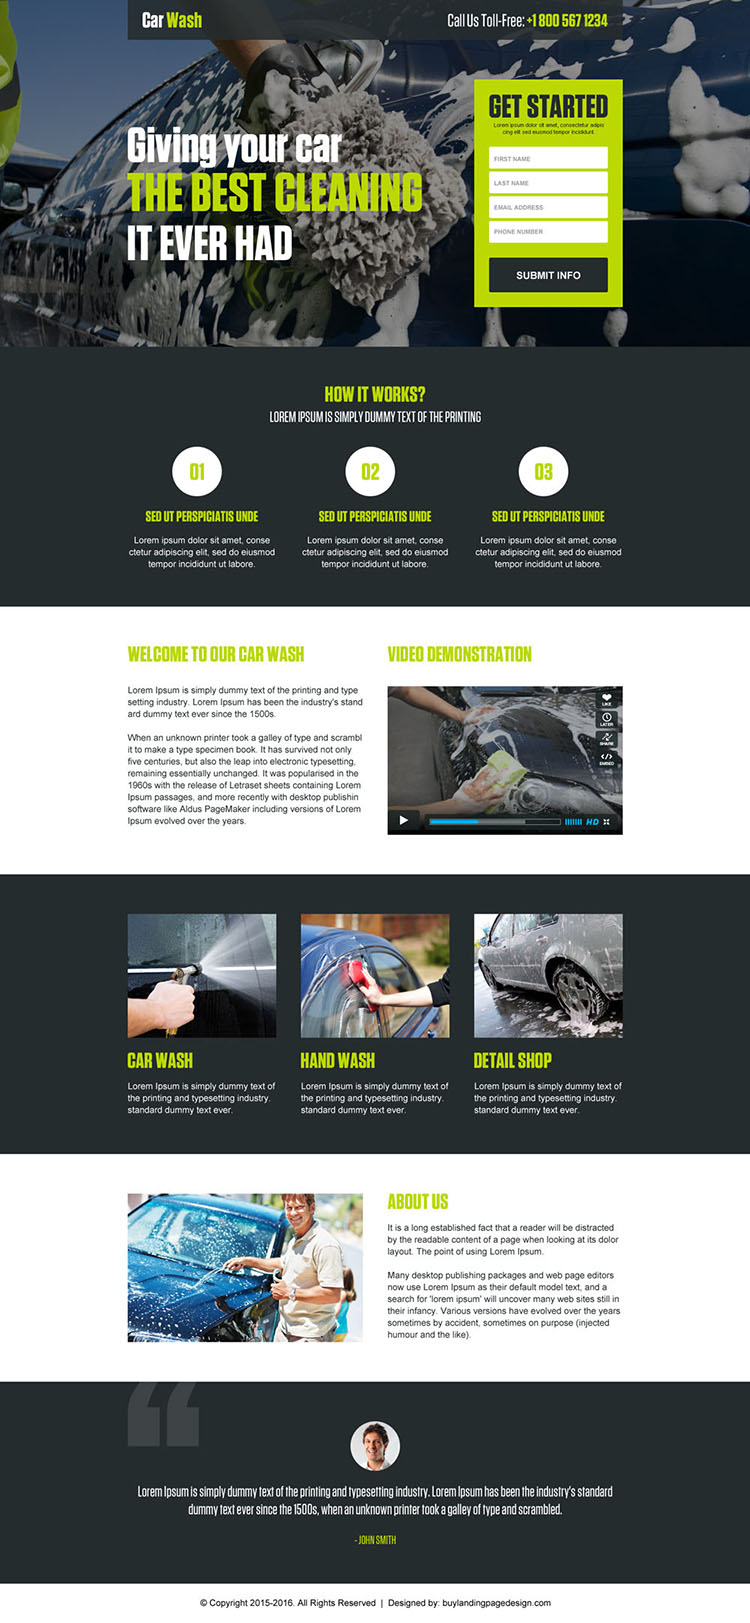 best car washing service lead maximizing responsive landing page design